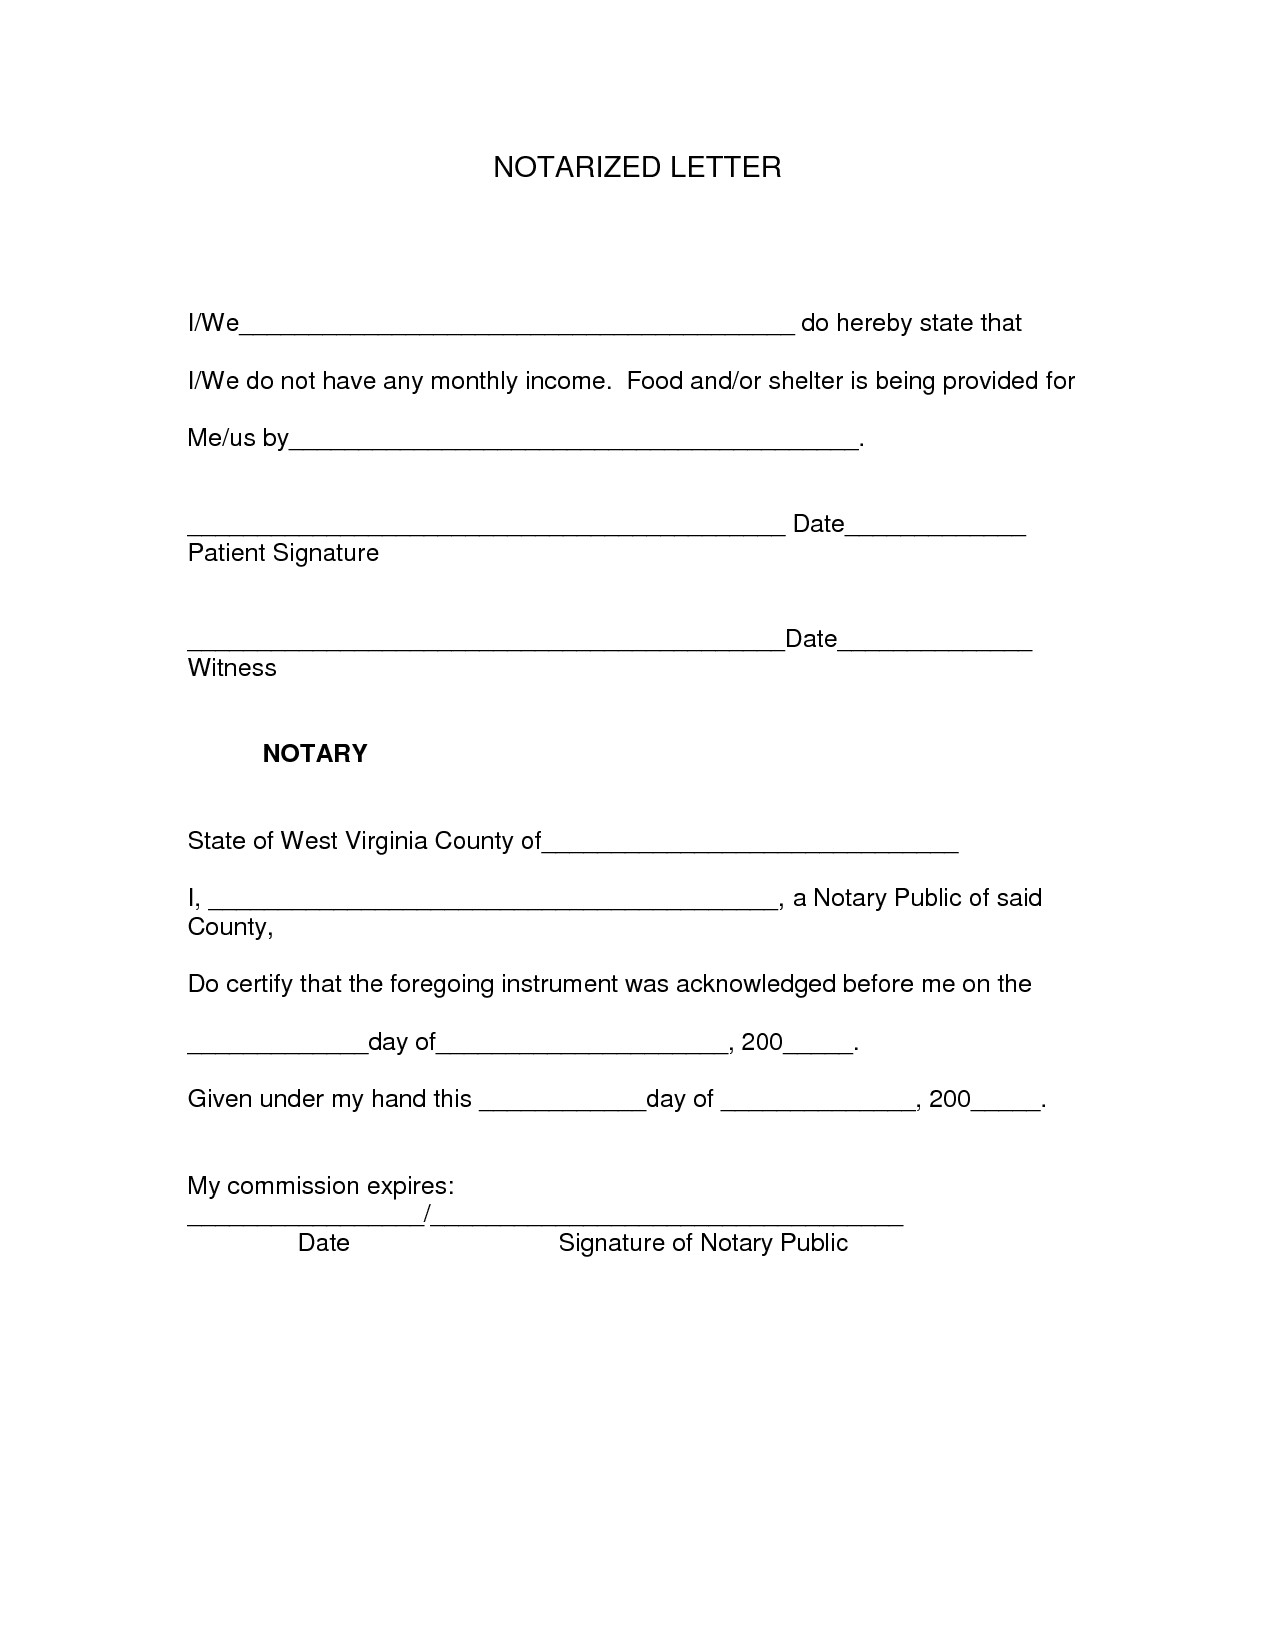 Notarized Letter Template for Residency - Notarized Document Template